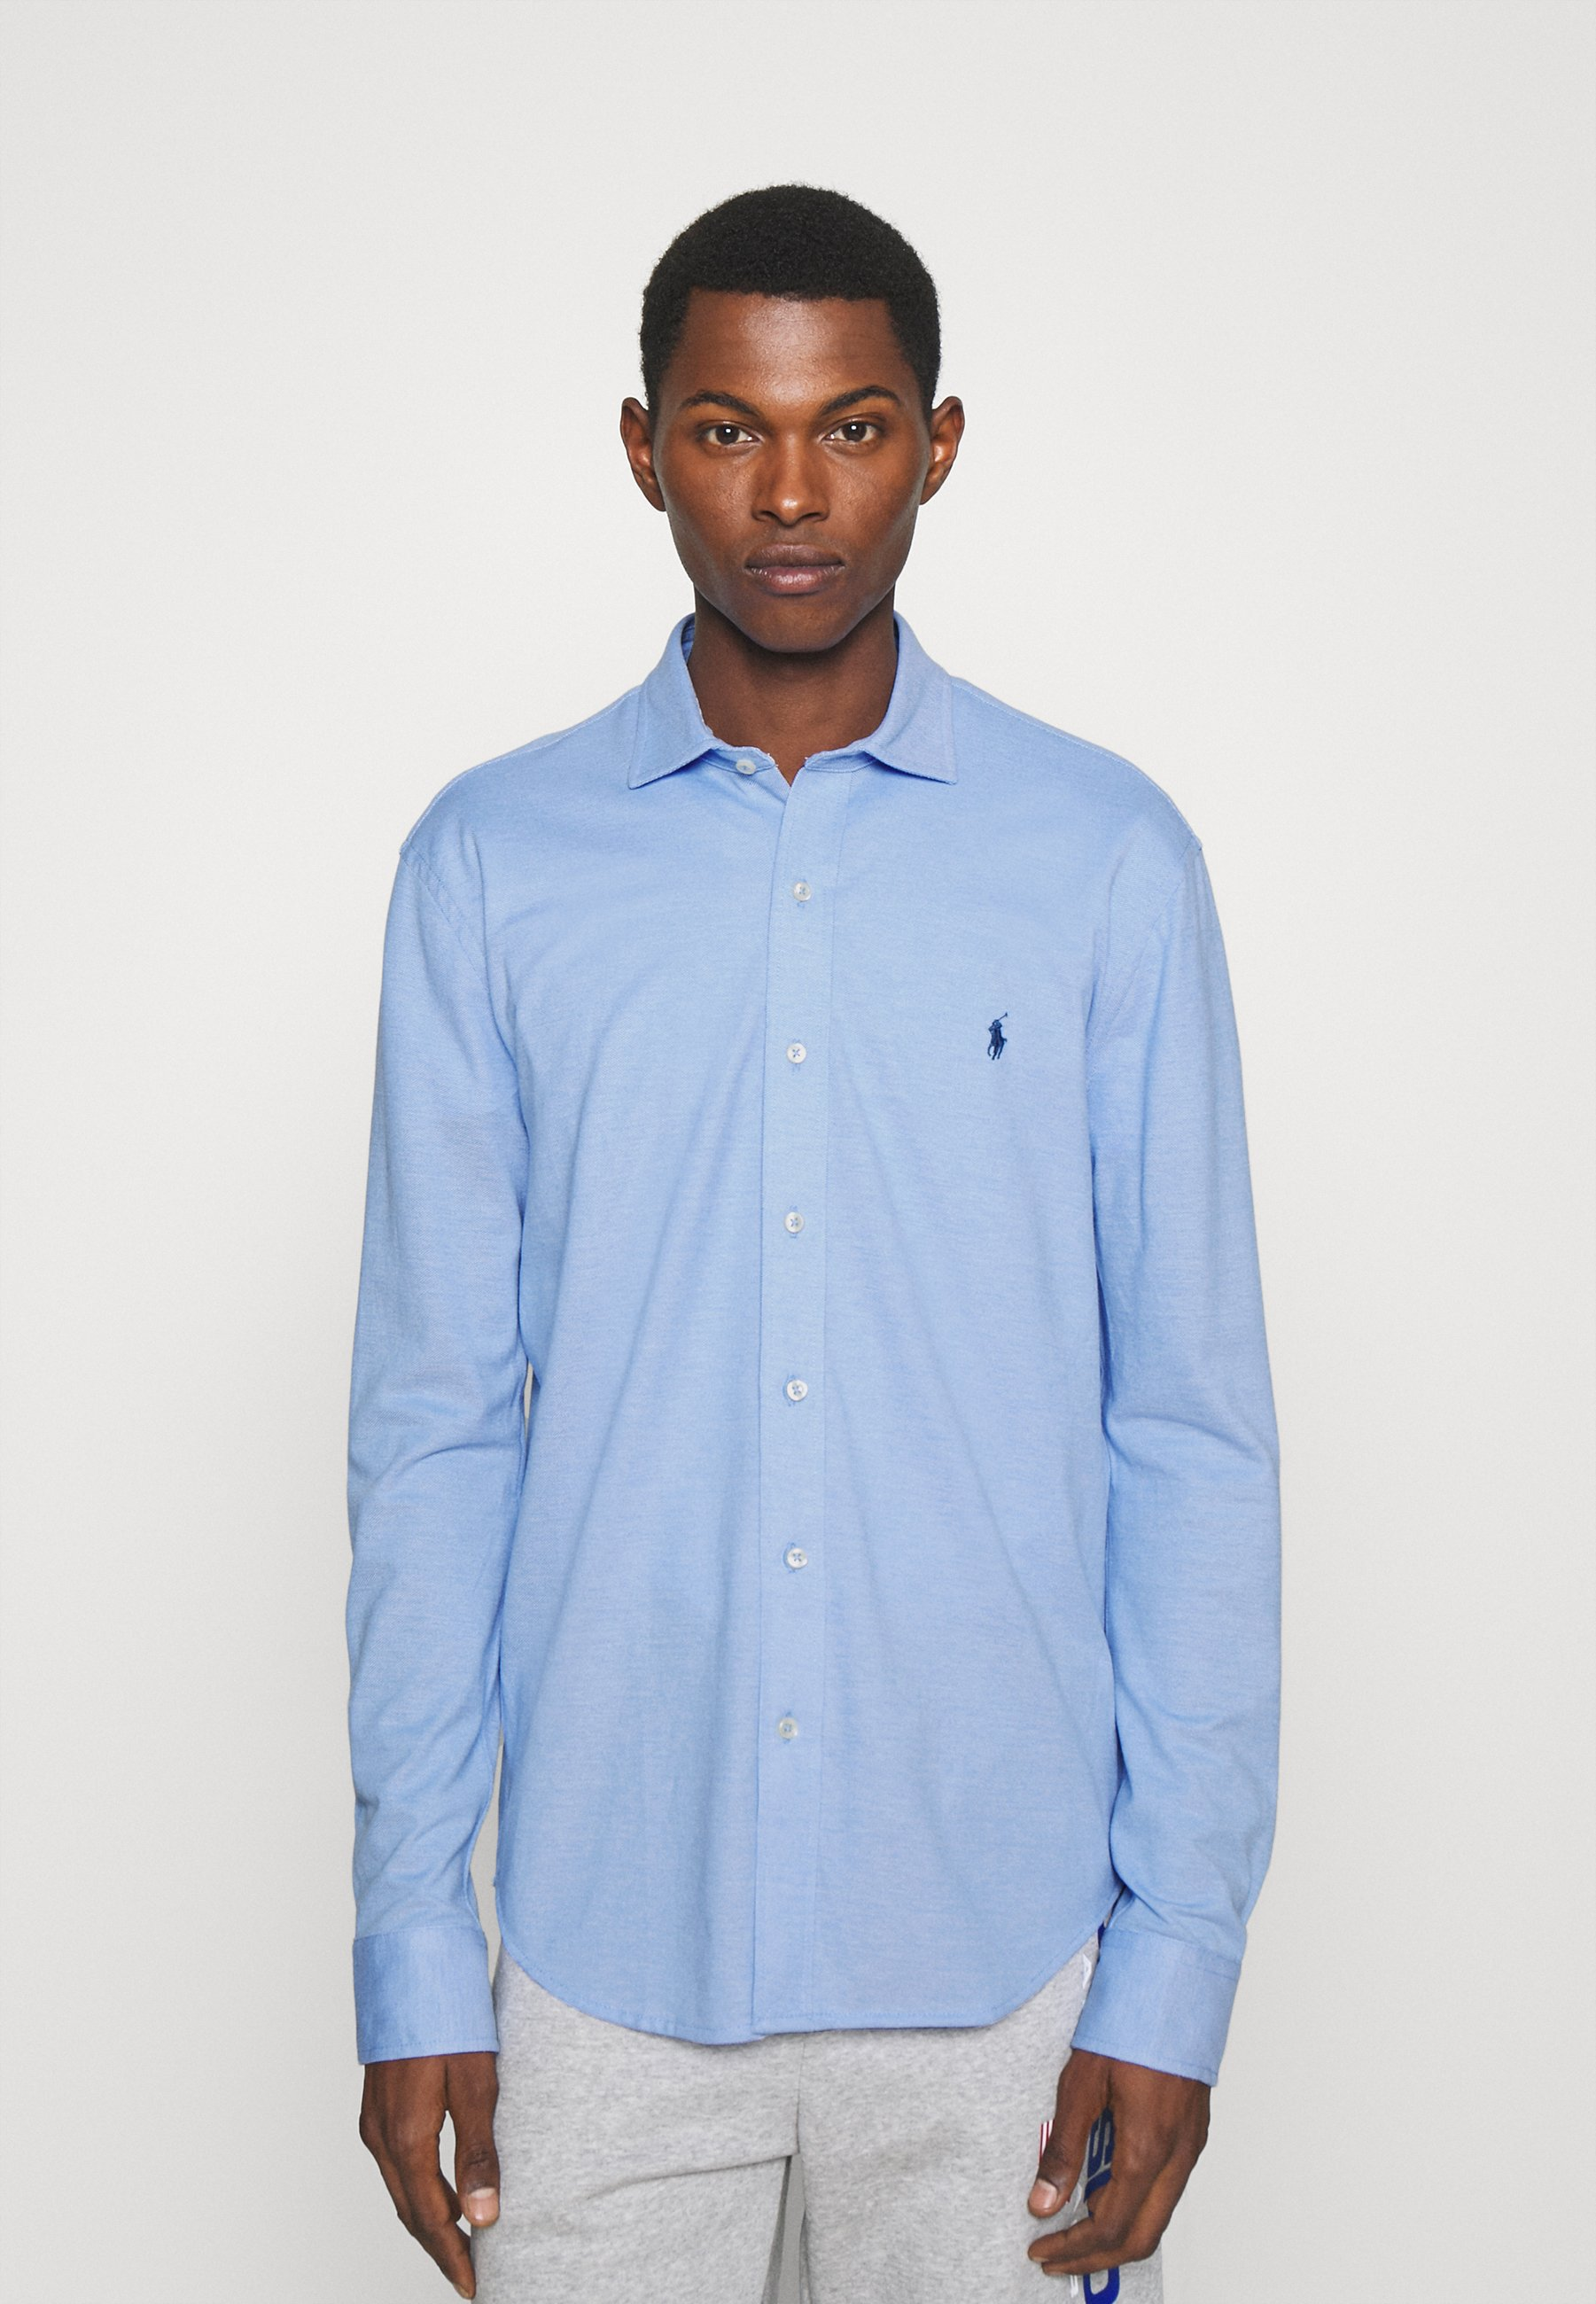 Homme KNIT OXFORD SHIRT - Chemise